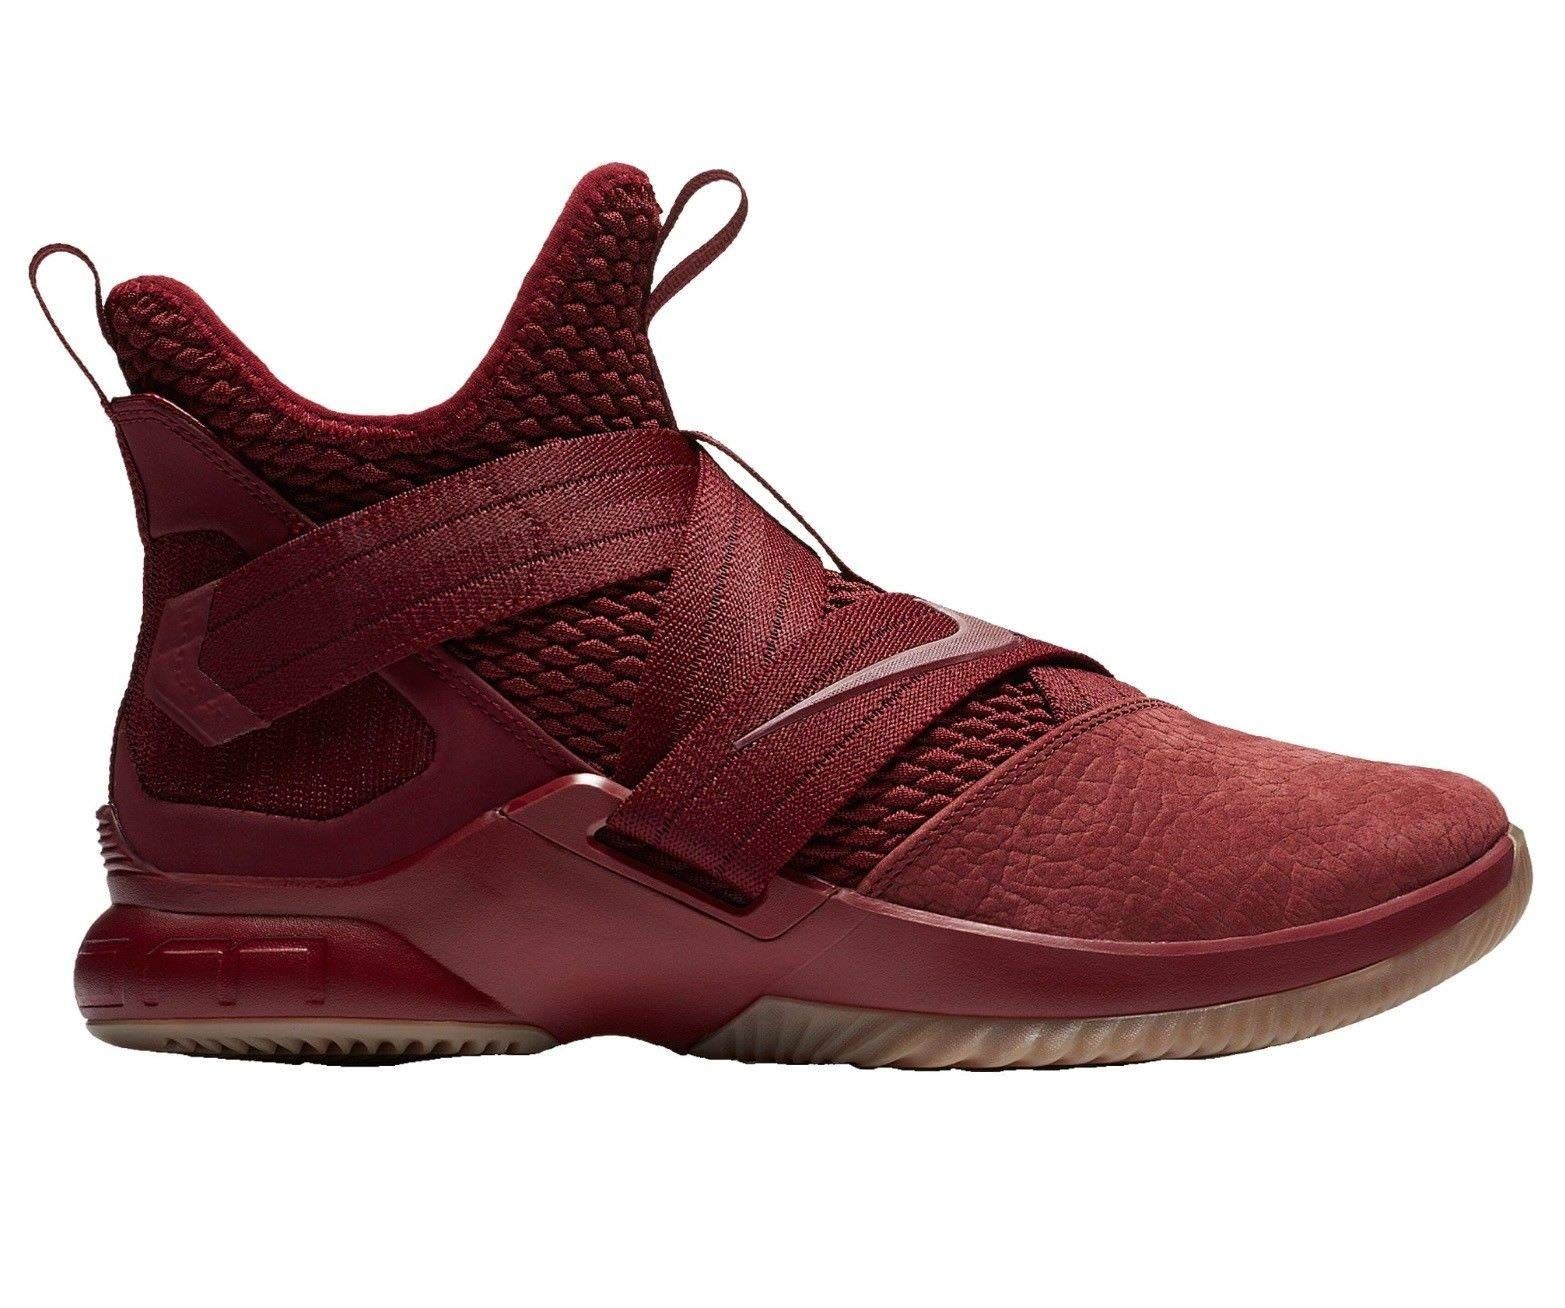 0f8a595e595 Galleon - NIKE Lebron Soldier 12 SFG Mens Basketball-Shoes AO4054-600 8 -  Team RED Team RED-Gum Light Brown